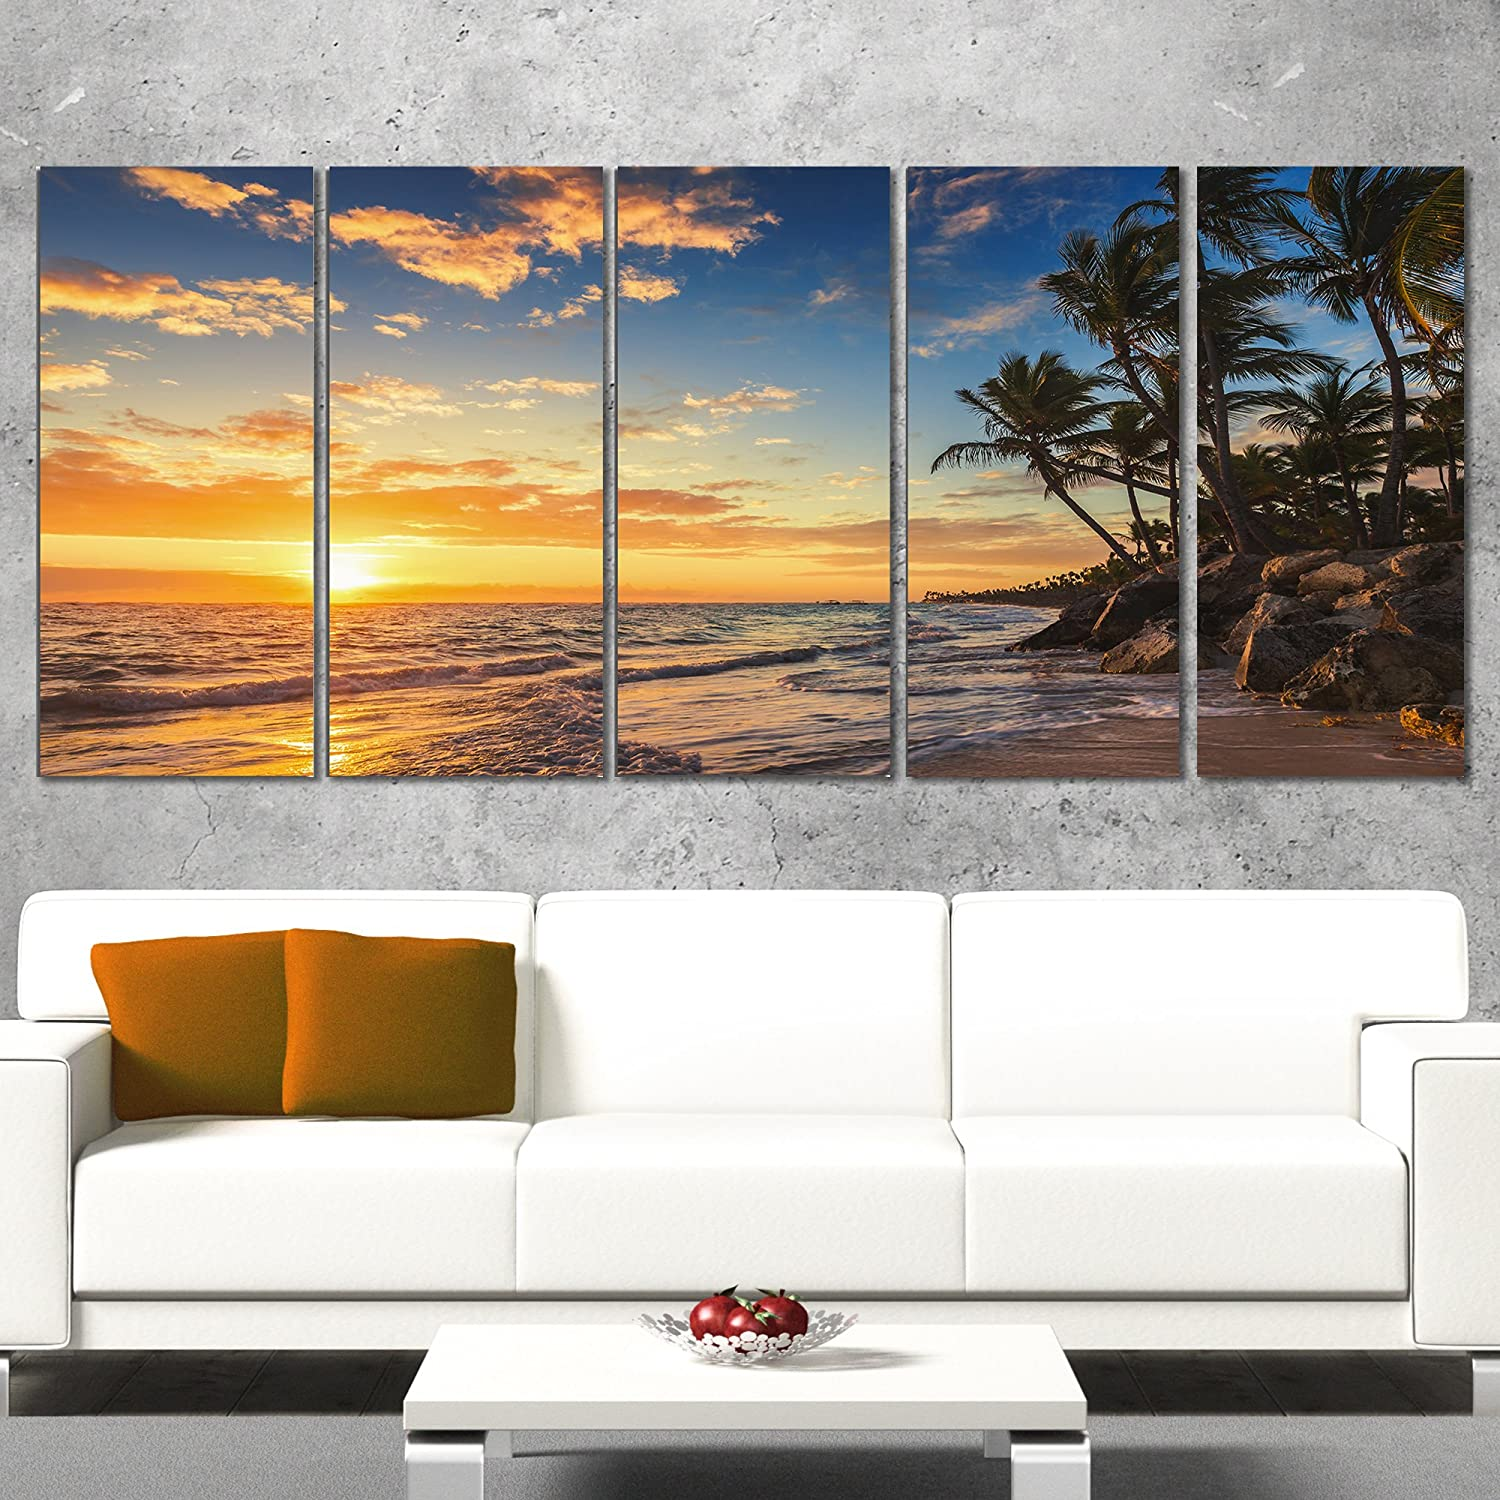 Designart Paradise Tropical Island Beach with Palms-Extra Large Seascape Art Canvas-60x28 5 Piece-PT10830-401, 60x28-5 Equal Panels